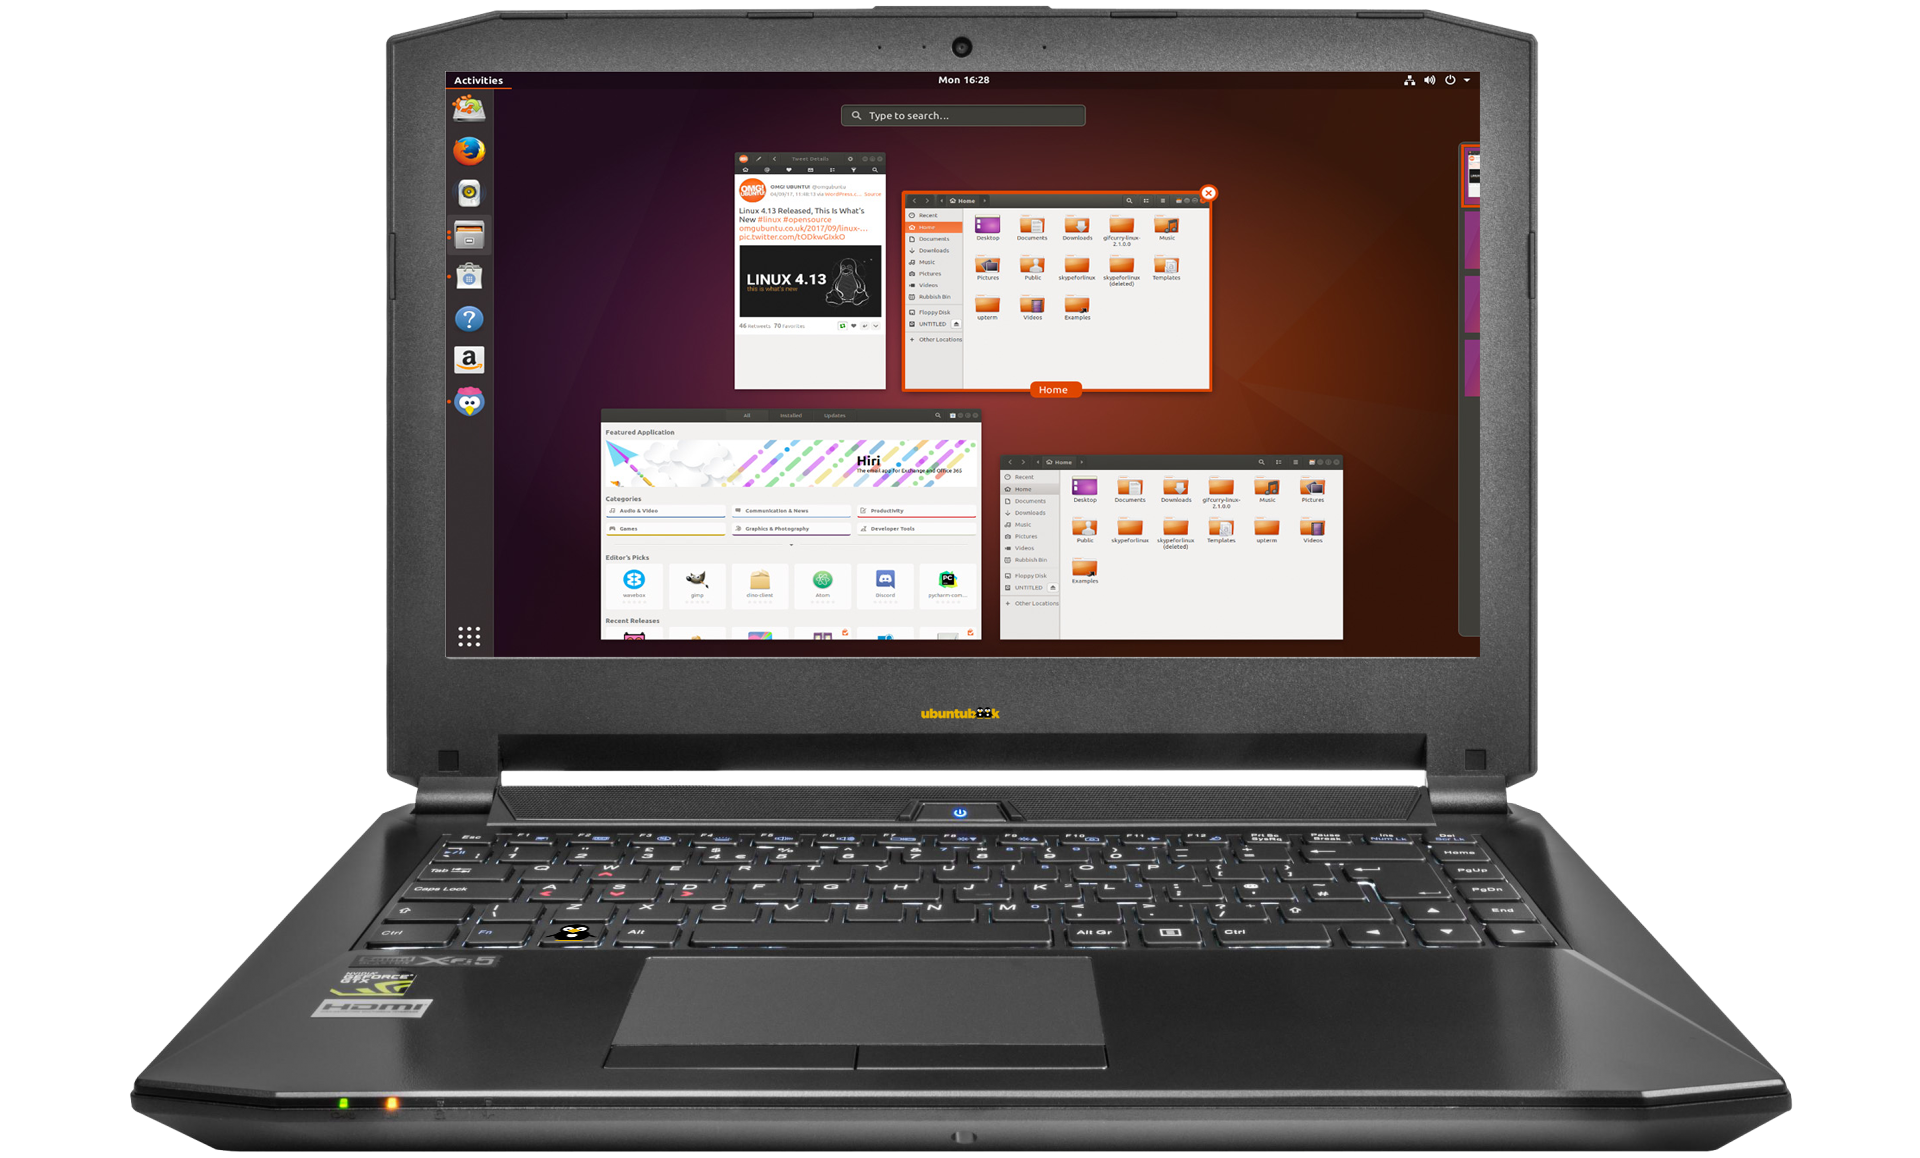 Ubuntu NoteBook 14